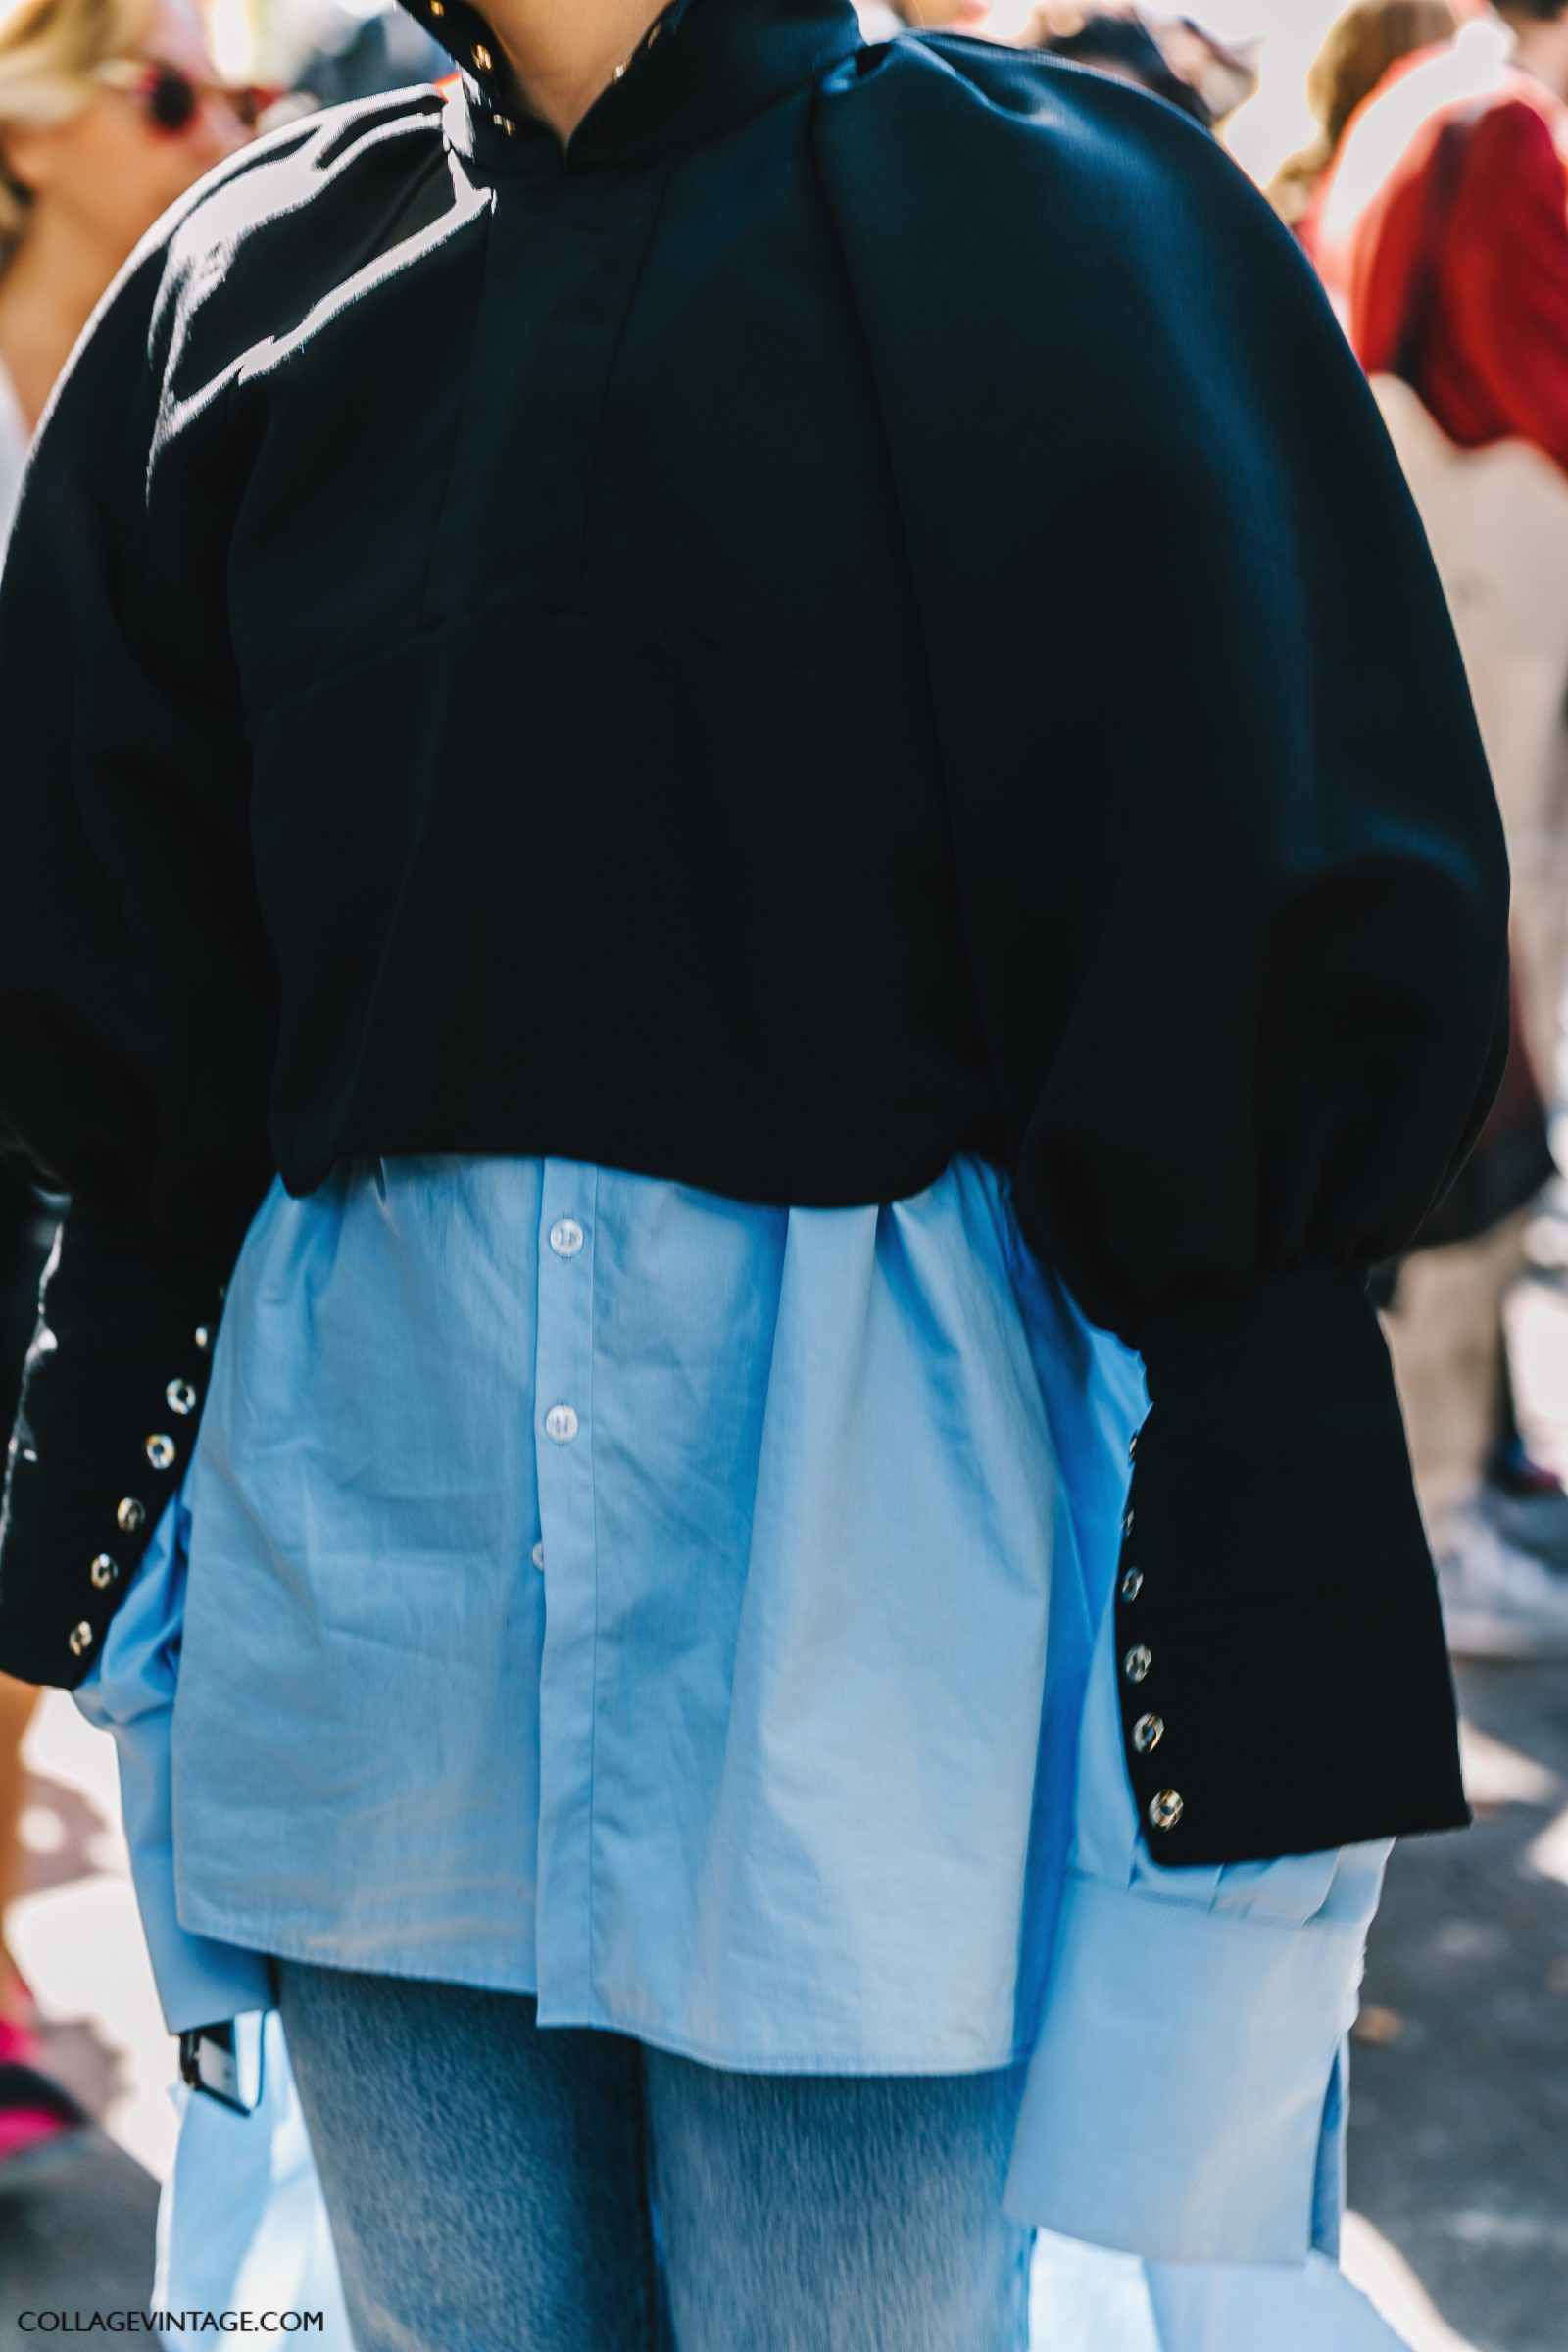 pfw-paris_fashion_week_ss17-street_style-outfit-collage_vintage-louis_vuitton-miu_miu-54